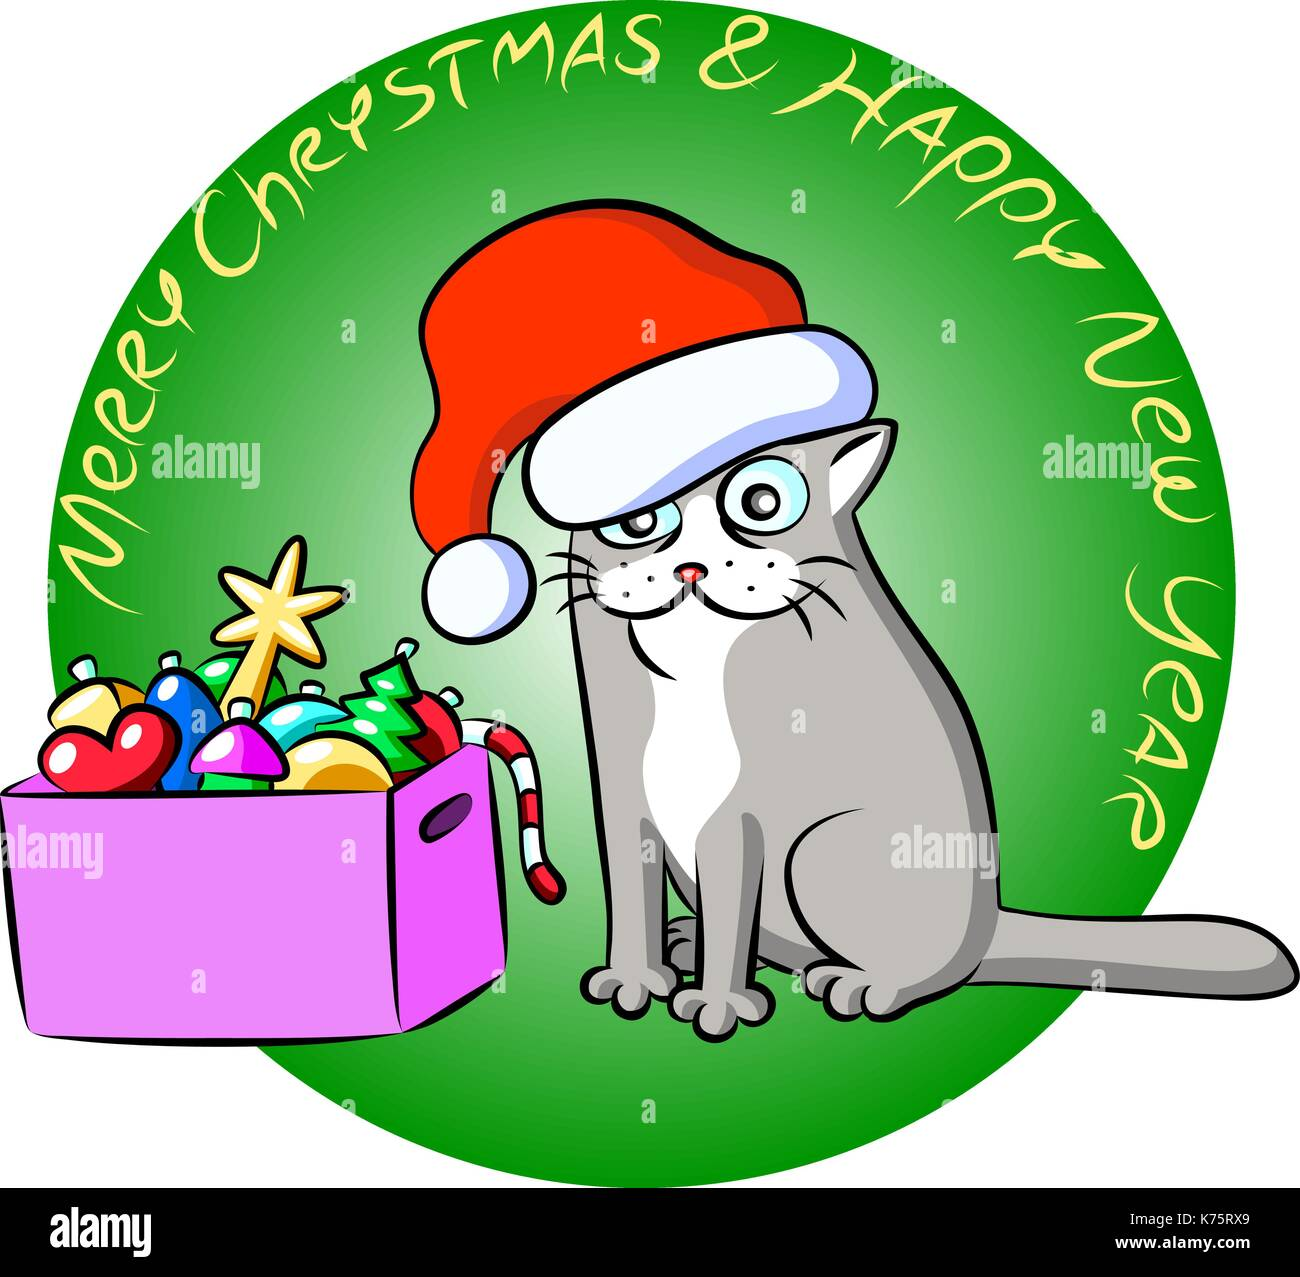 Christmas grey cat and a nox of toys. Vector Illustration. Cheerful celebration pet character. - Stock Image